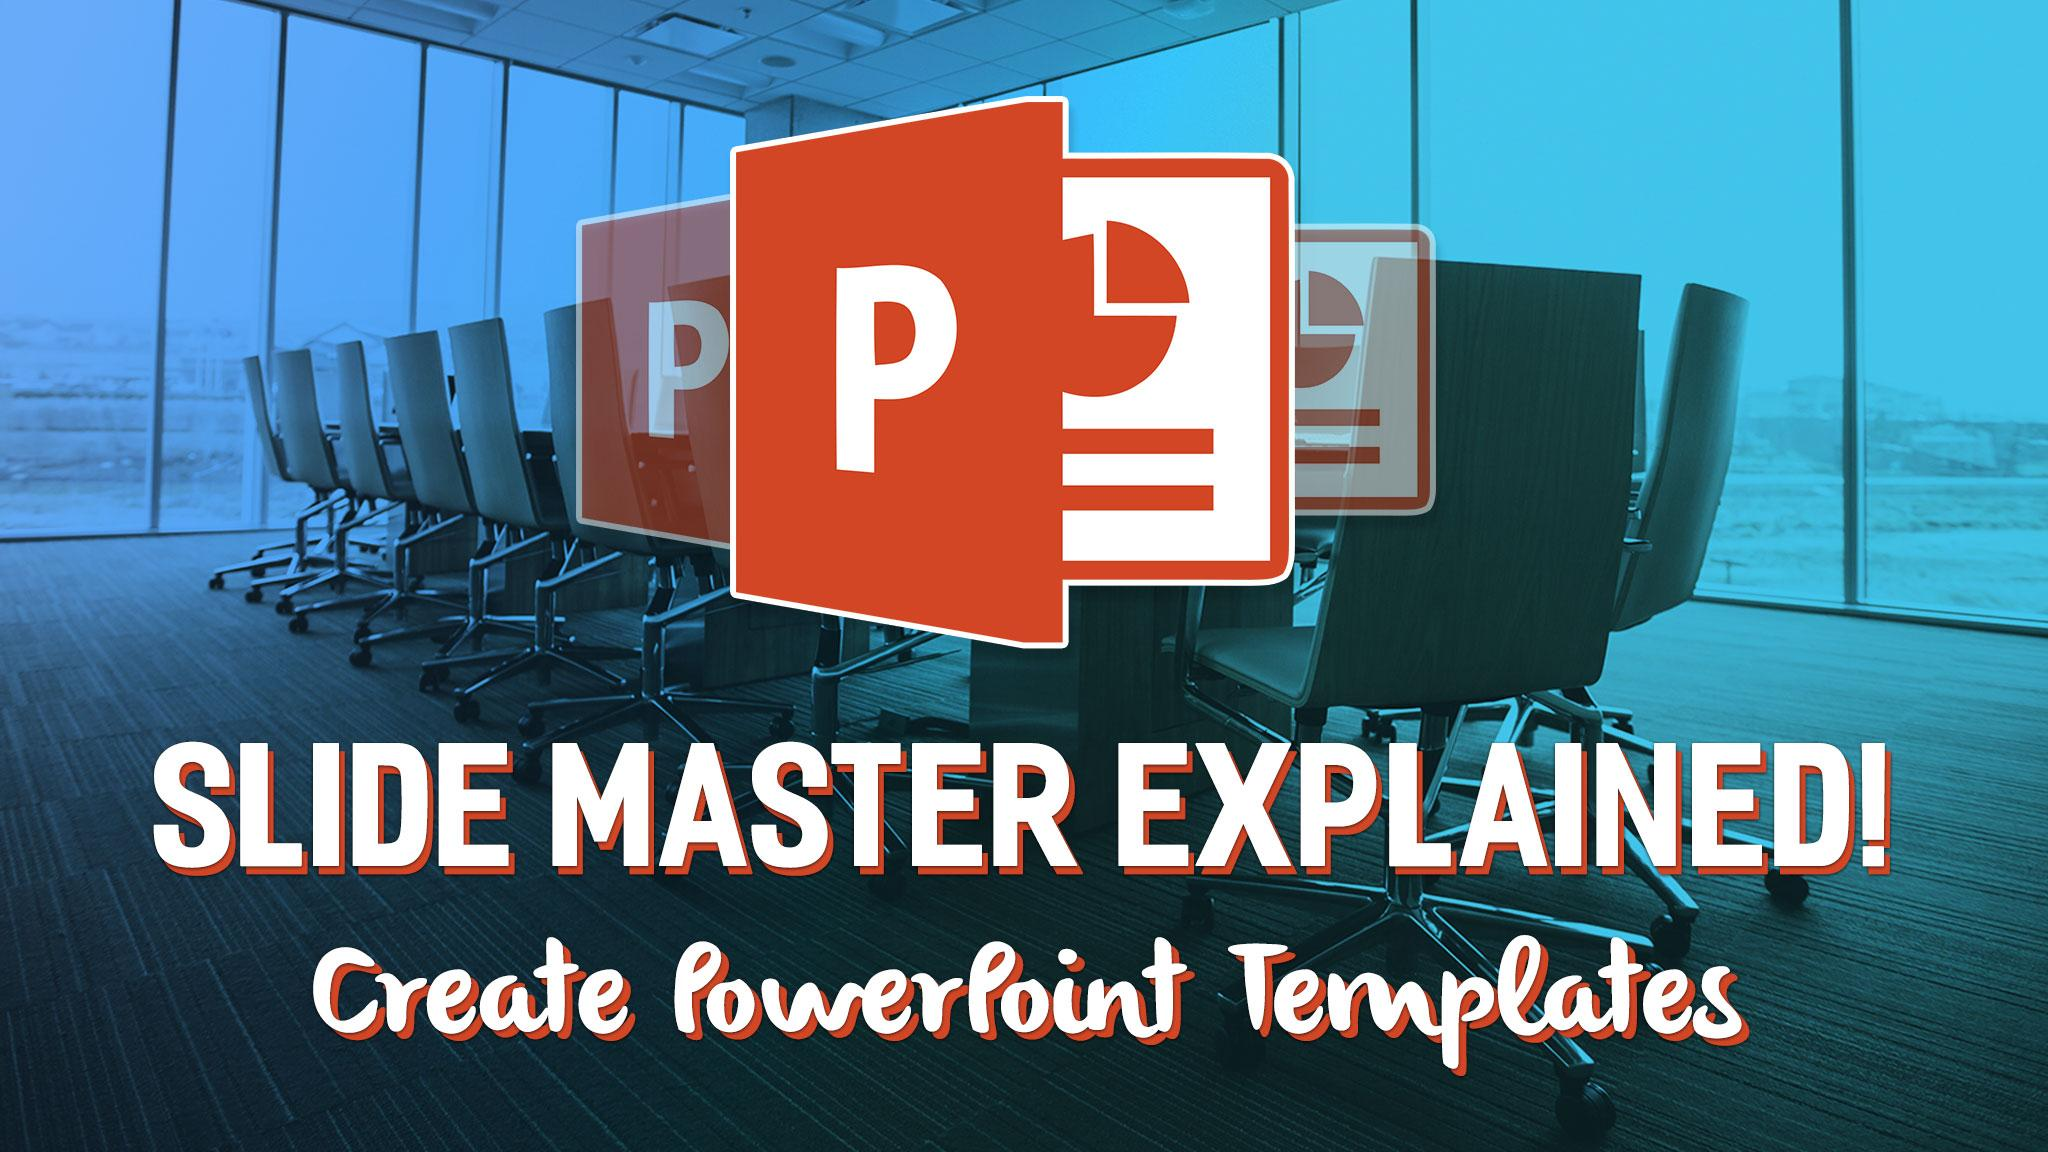 Setting up and creating powerpoint templates slide master explained i cover all the important topics aspects within this class on template and layout creation namely toneelgroepblik Gallery